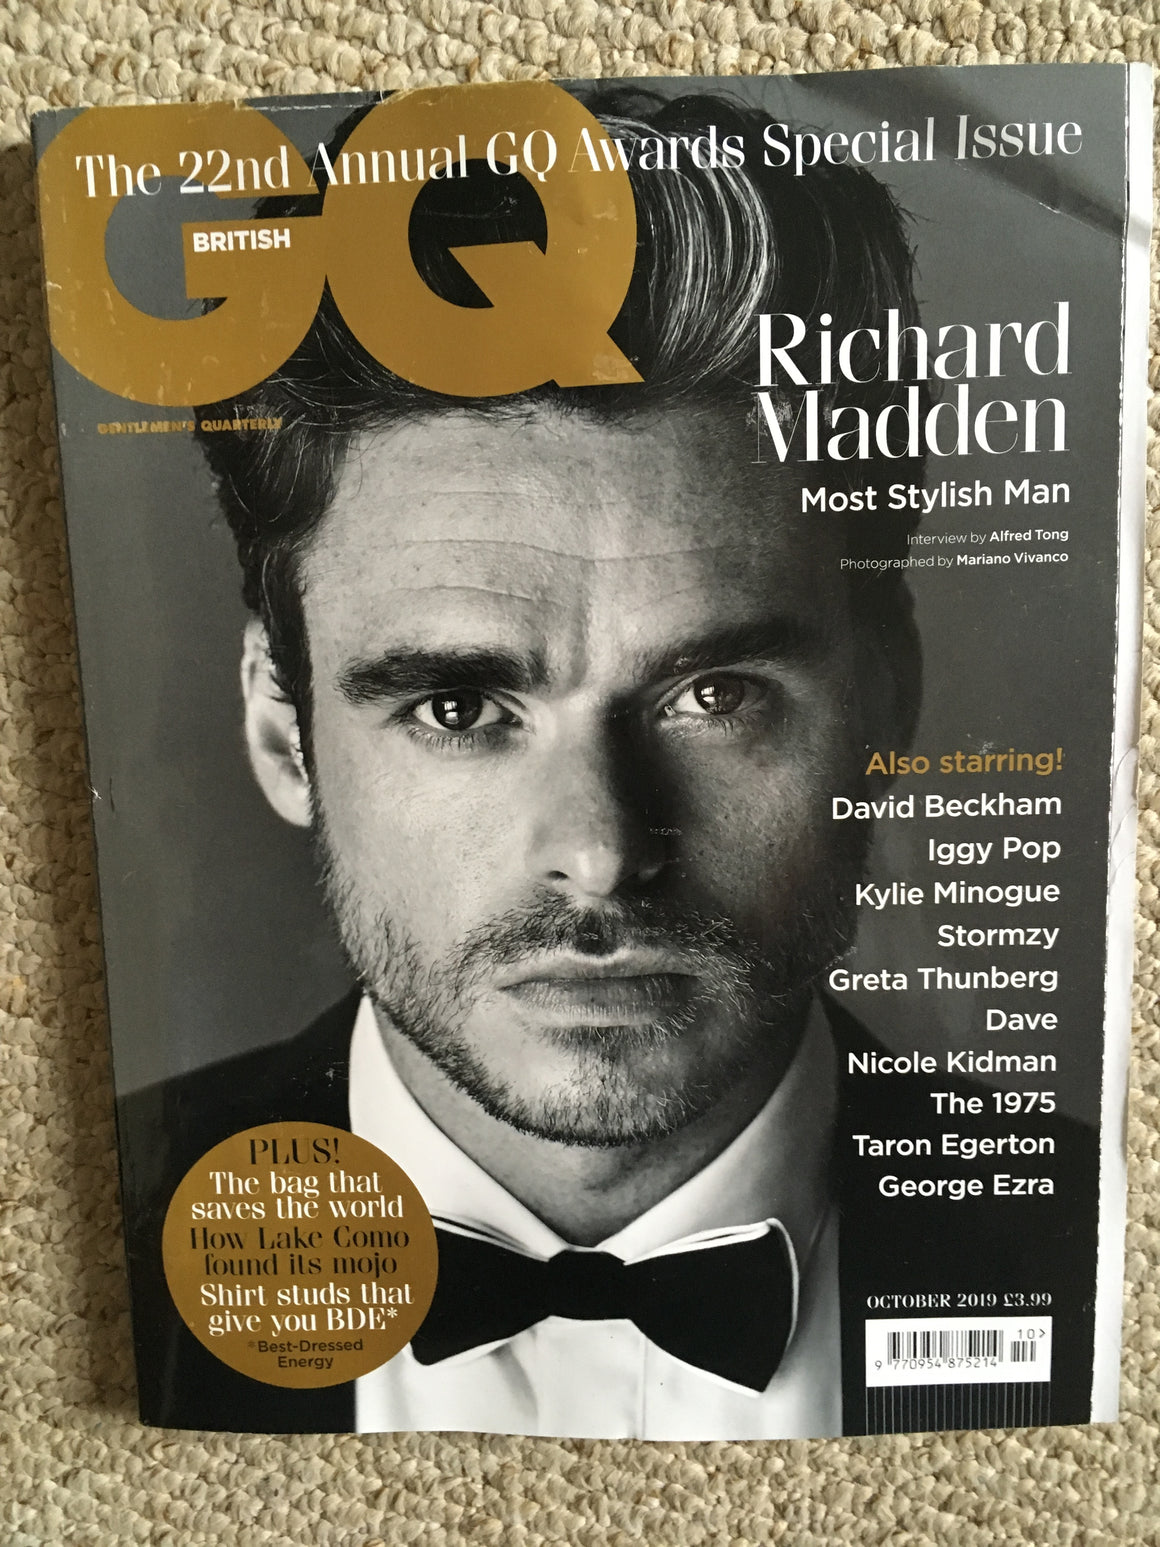 British GQ Magazine October 2019: RICHARD MADDEN Limited Edition Cover